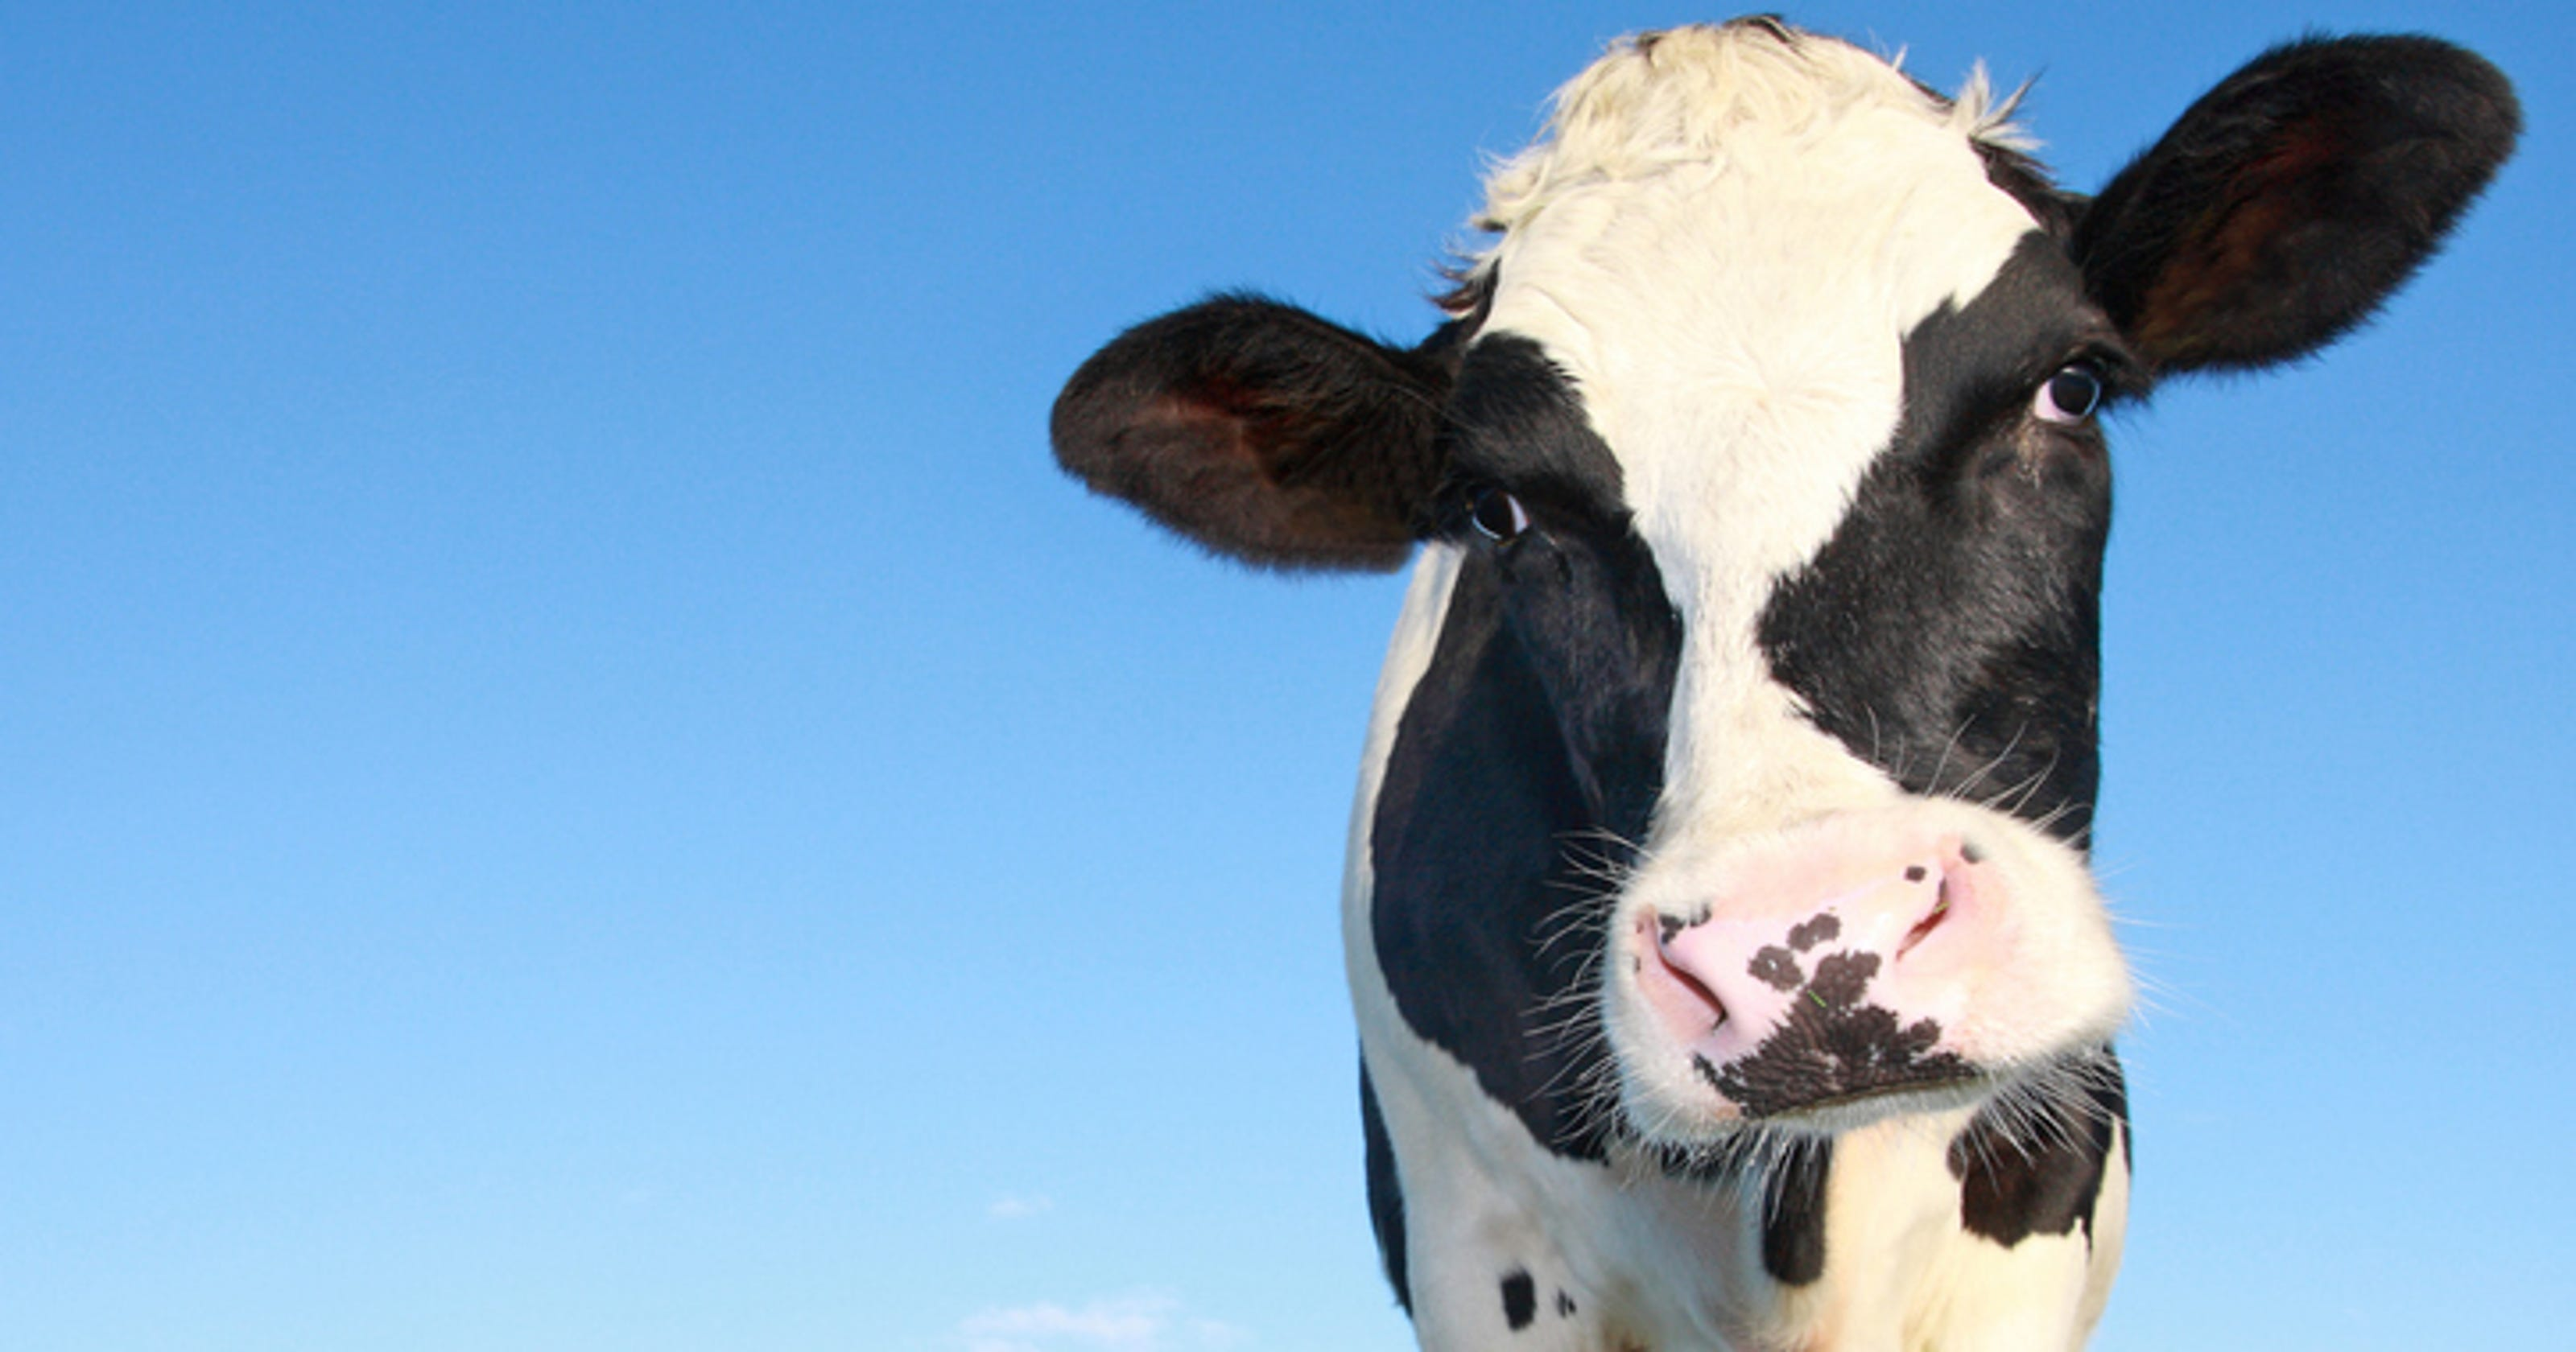 Study finds organic milk cleaner than conventional dairy